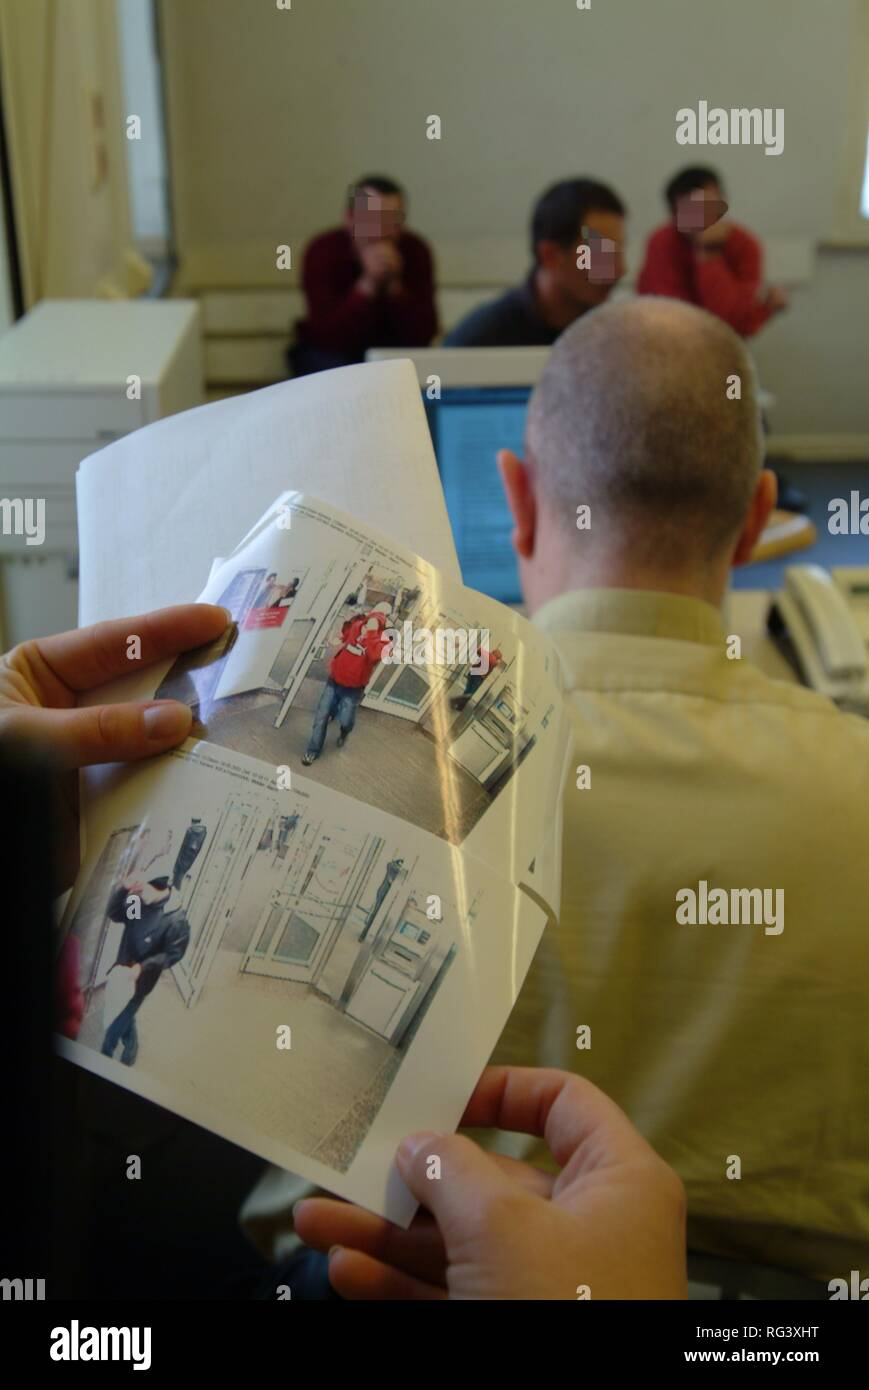 DEU, Germany, Essen: Daily police life. Officer from a city police station. - Stock Image